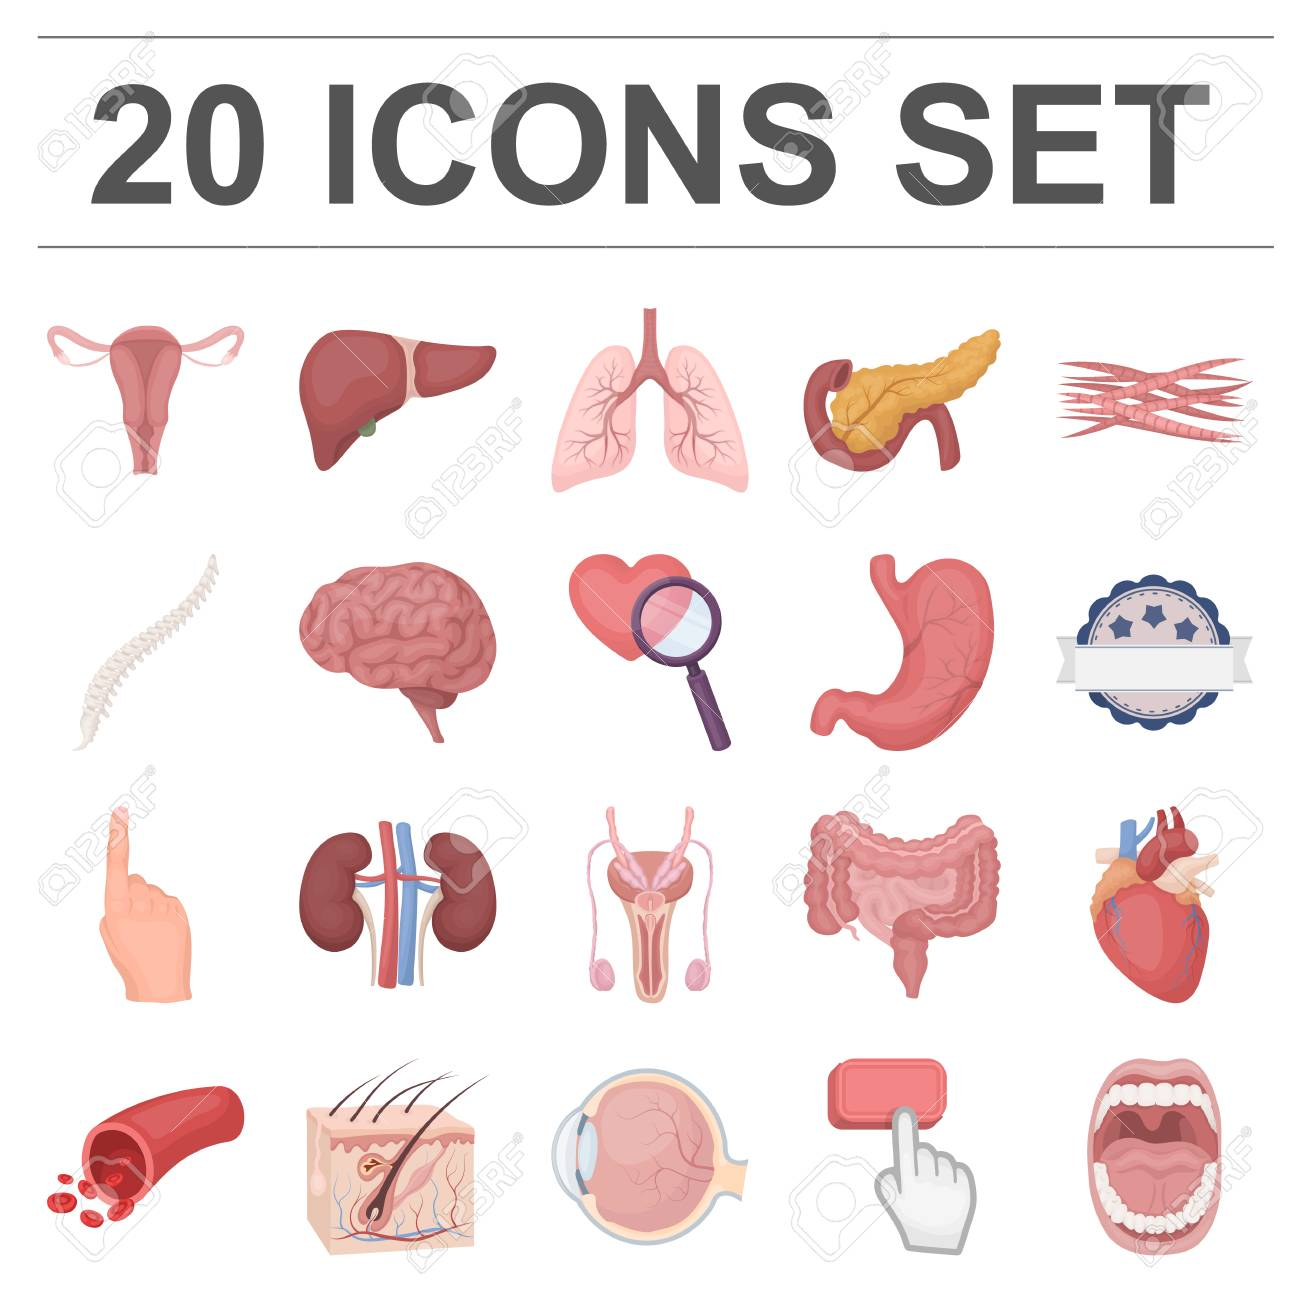 Internal Organs Of A Human Cartoon Icons In Set Collection For